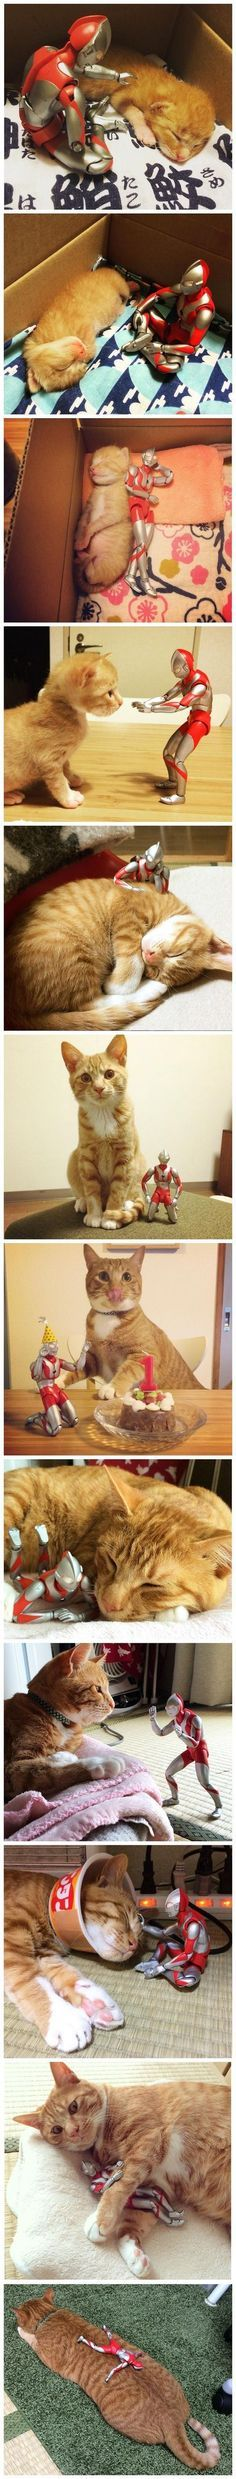 35+ Funny Pet Expression | This Cat's Favorite Toy Has Been With Him Since He Was a Baby - I Can Has Cheezburger? - Funny Cats | Funny Pictures | Funny Cat Memes | GIF | Cat GIFs | Dogs | Animal Captions | LOLcats | Have Fun | Funny Memes